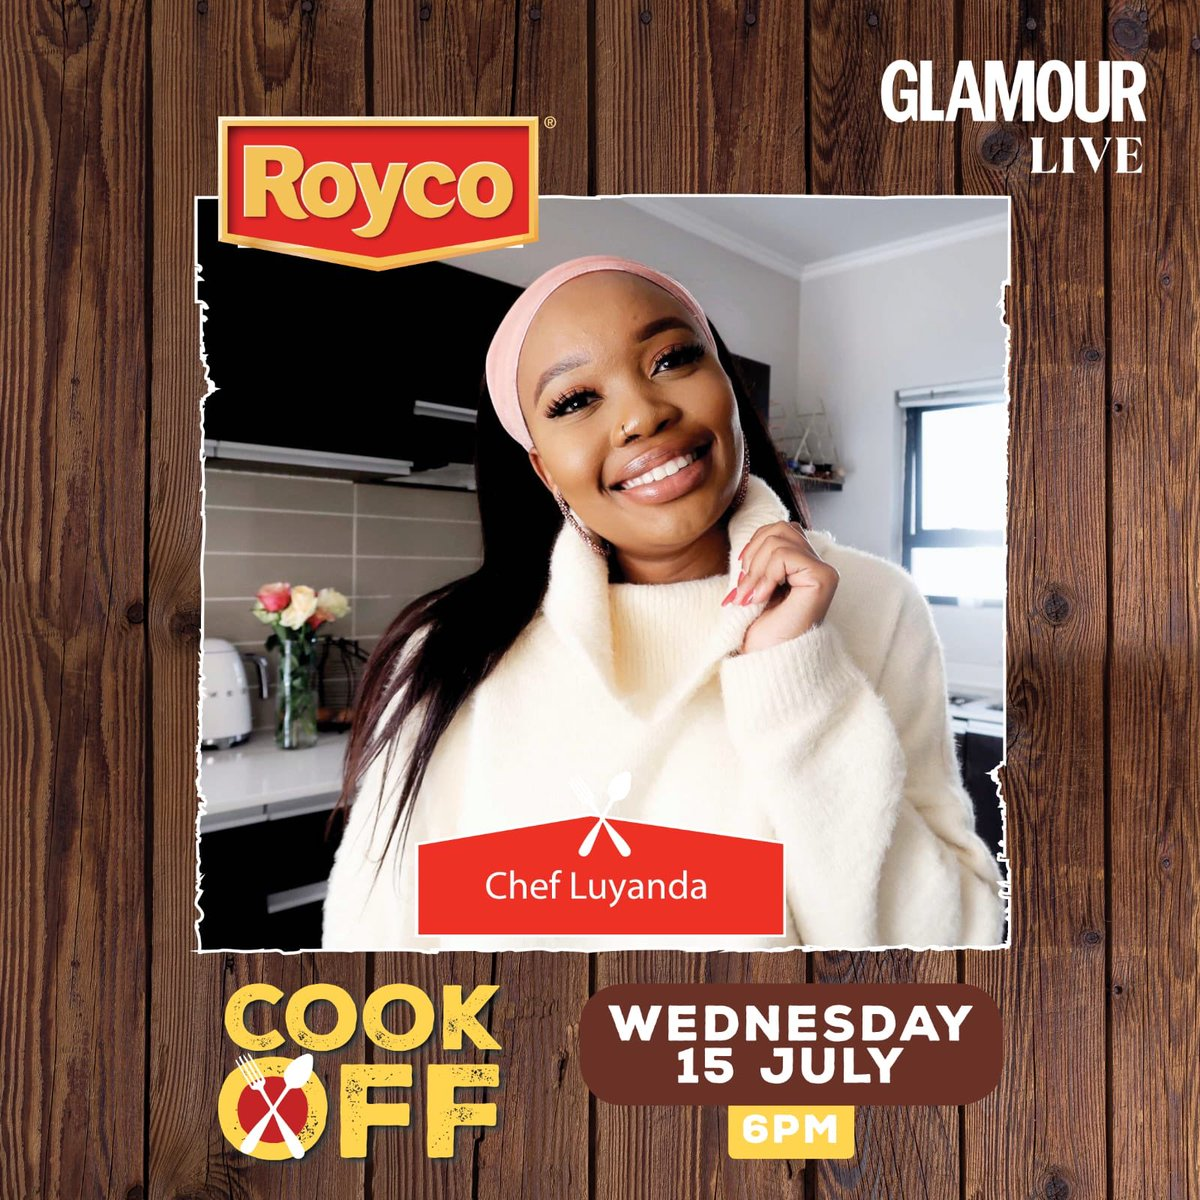 Join us tomorrow at 6PM SAST for a #GLAMOURLive with @Luyanda_Maf where we will be talking all things the Royco Cook-Off challenge! Which is taking place on the 23rd of July at 7pm CAT on the Royco South Africa's Instagram page. #RoycoSA  #RoycoCookOff https://t.co/BFdMMGh9Ks